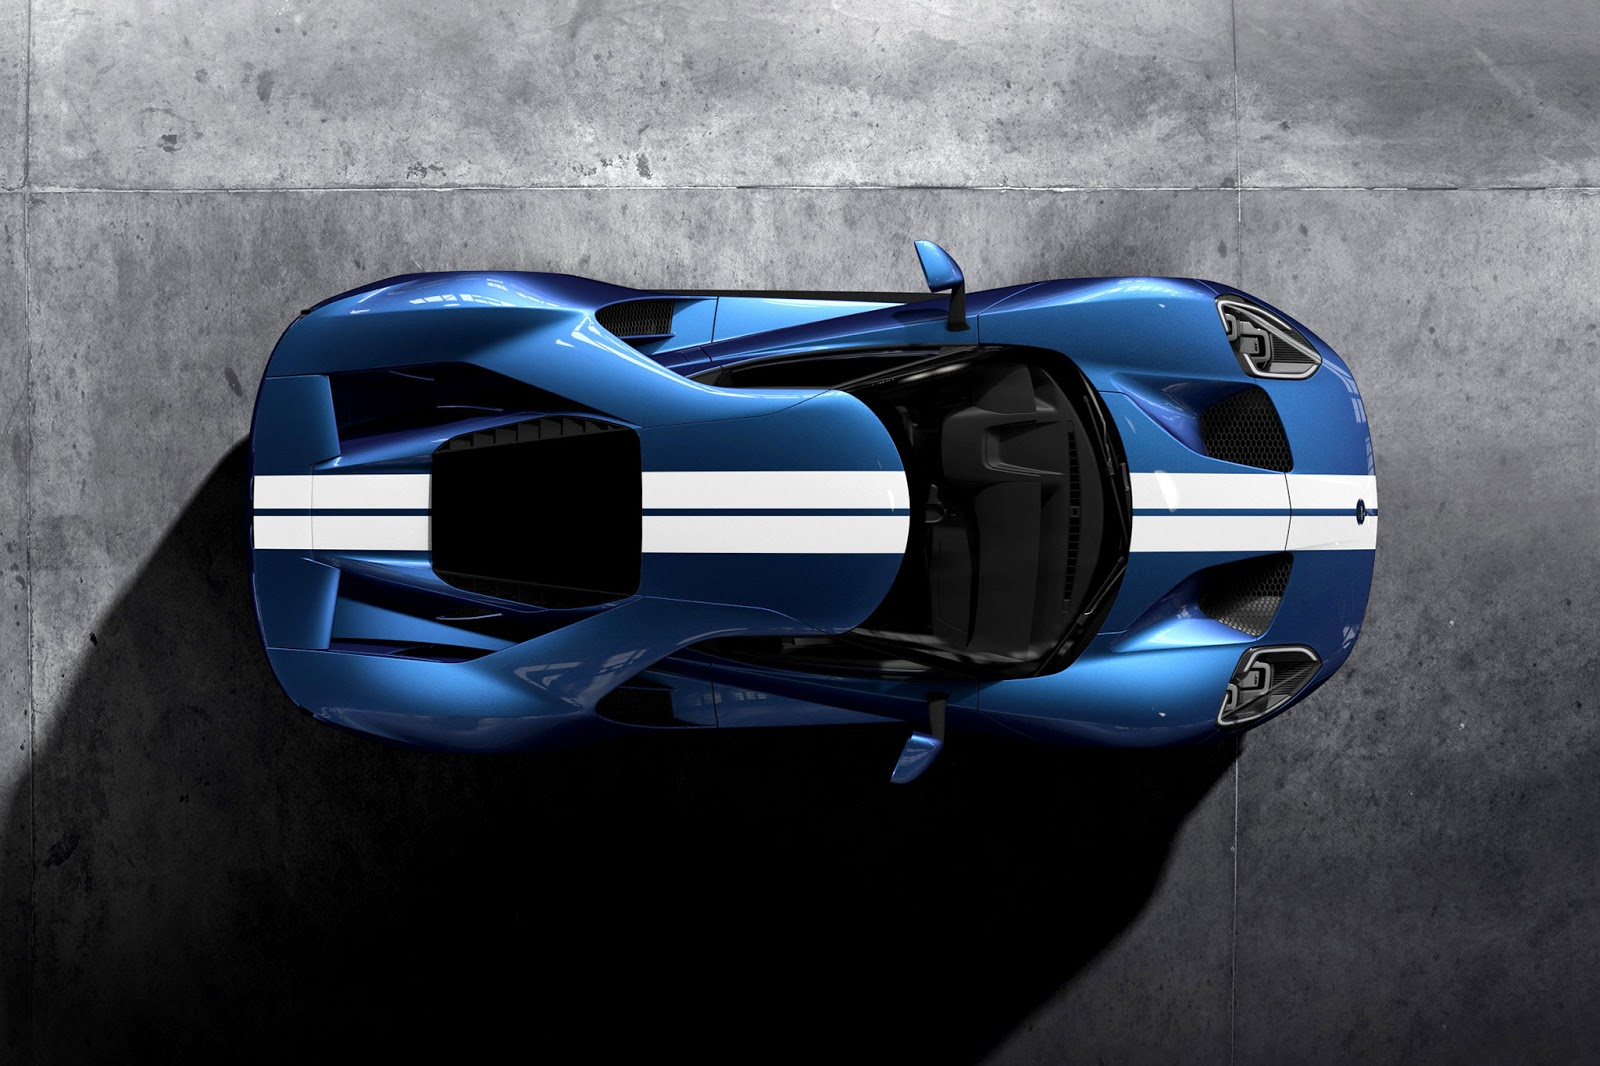 Ford Issued A Ford Gt In  With Bolder Exterior As Different From The Old Generation Looked At The Front Of The Body According To The Character Of Sport